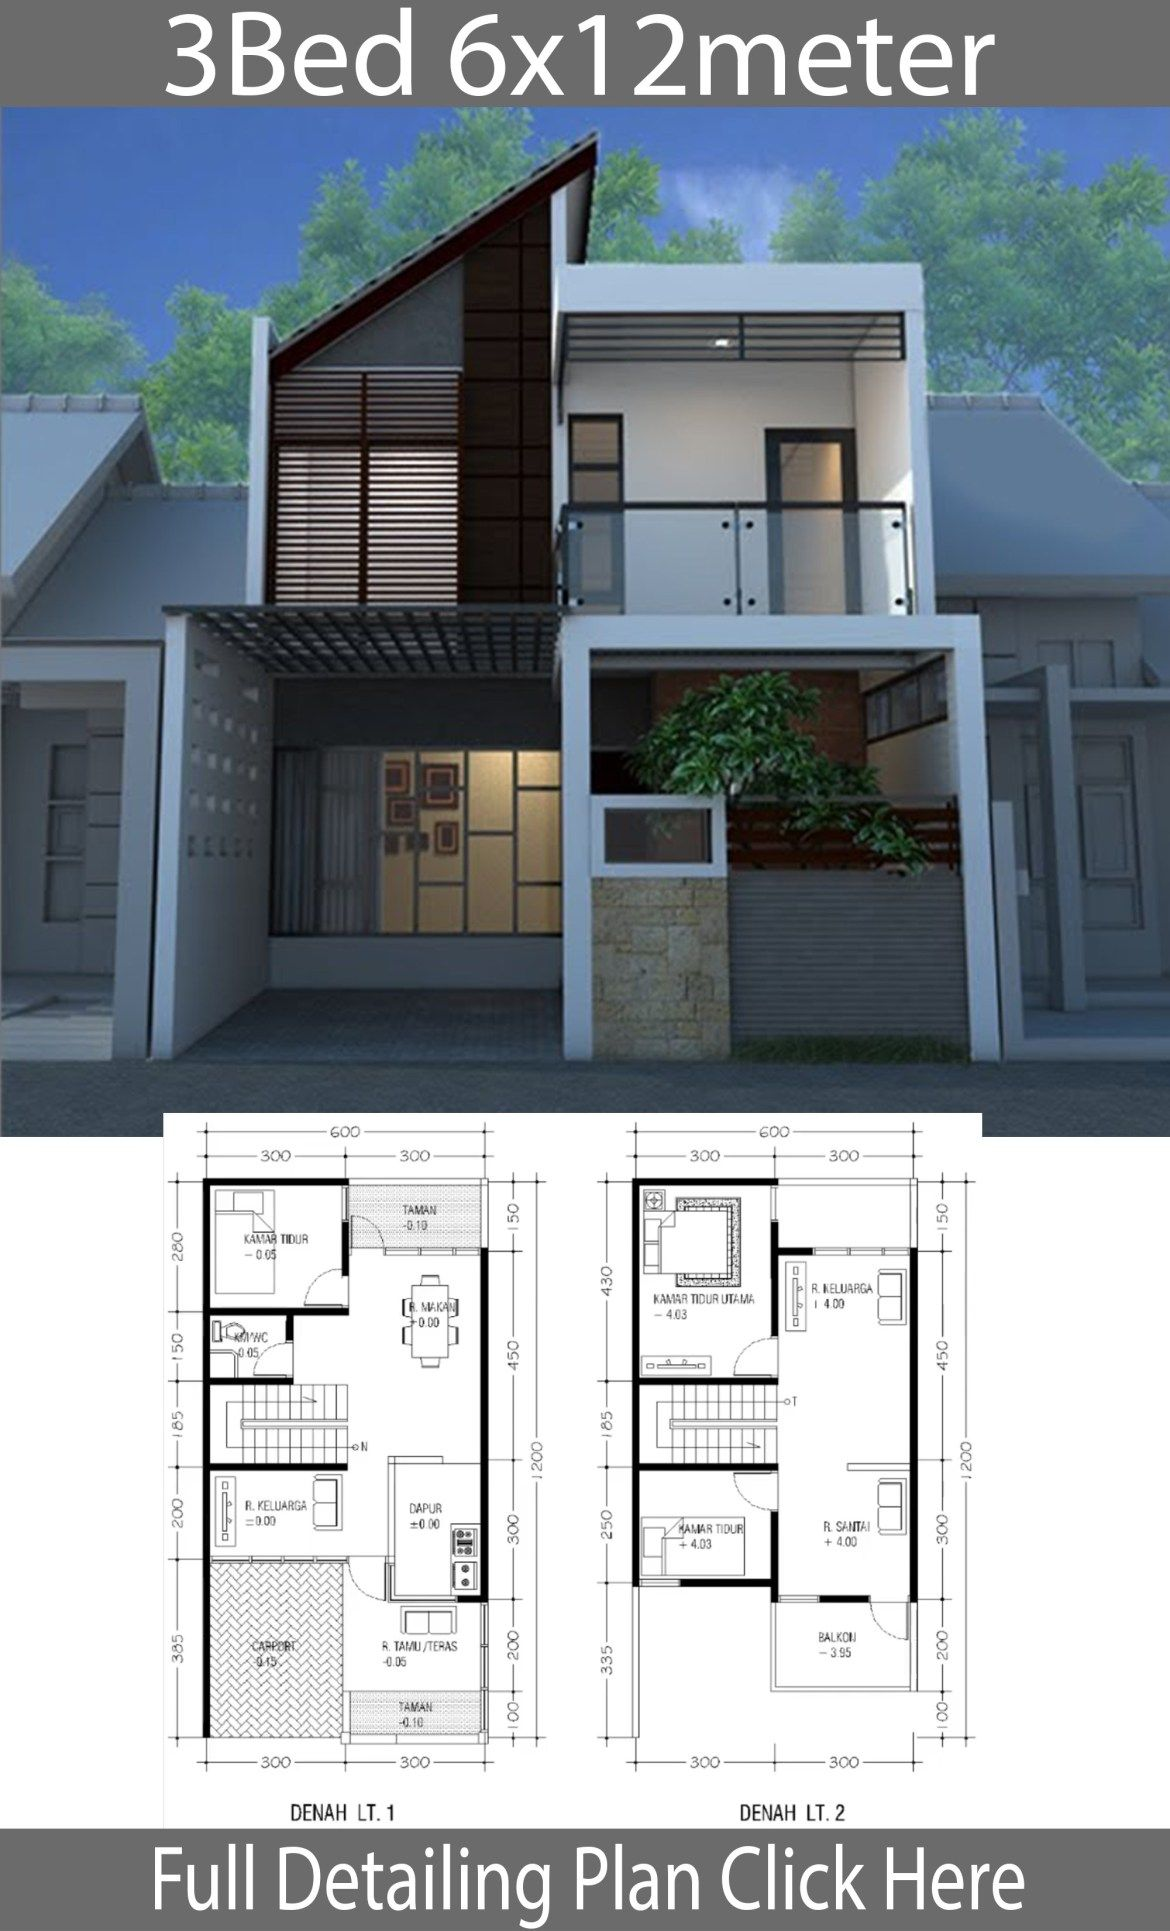 Minimalist Home Design On Land Of 6m X 12m Home Planssearch Architectural House Plans Modern Minimalist House House Layouts